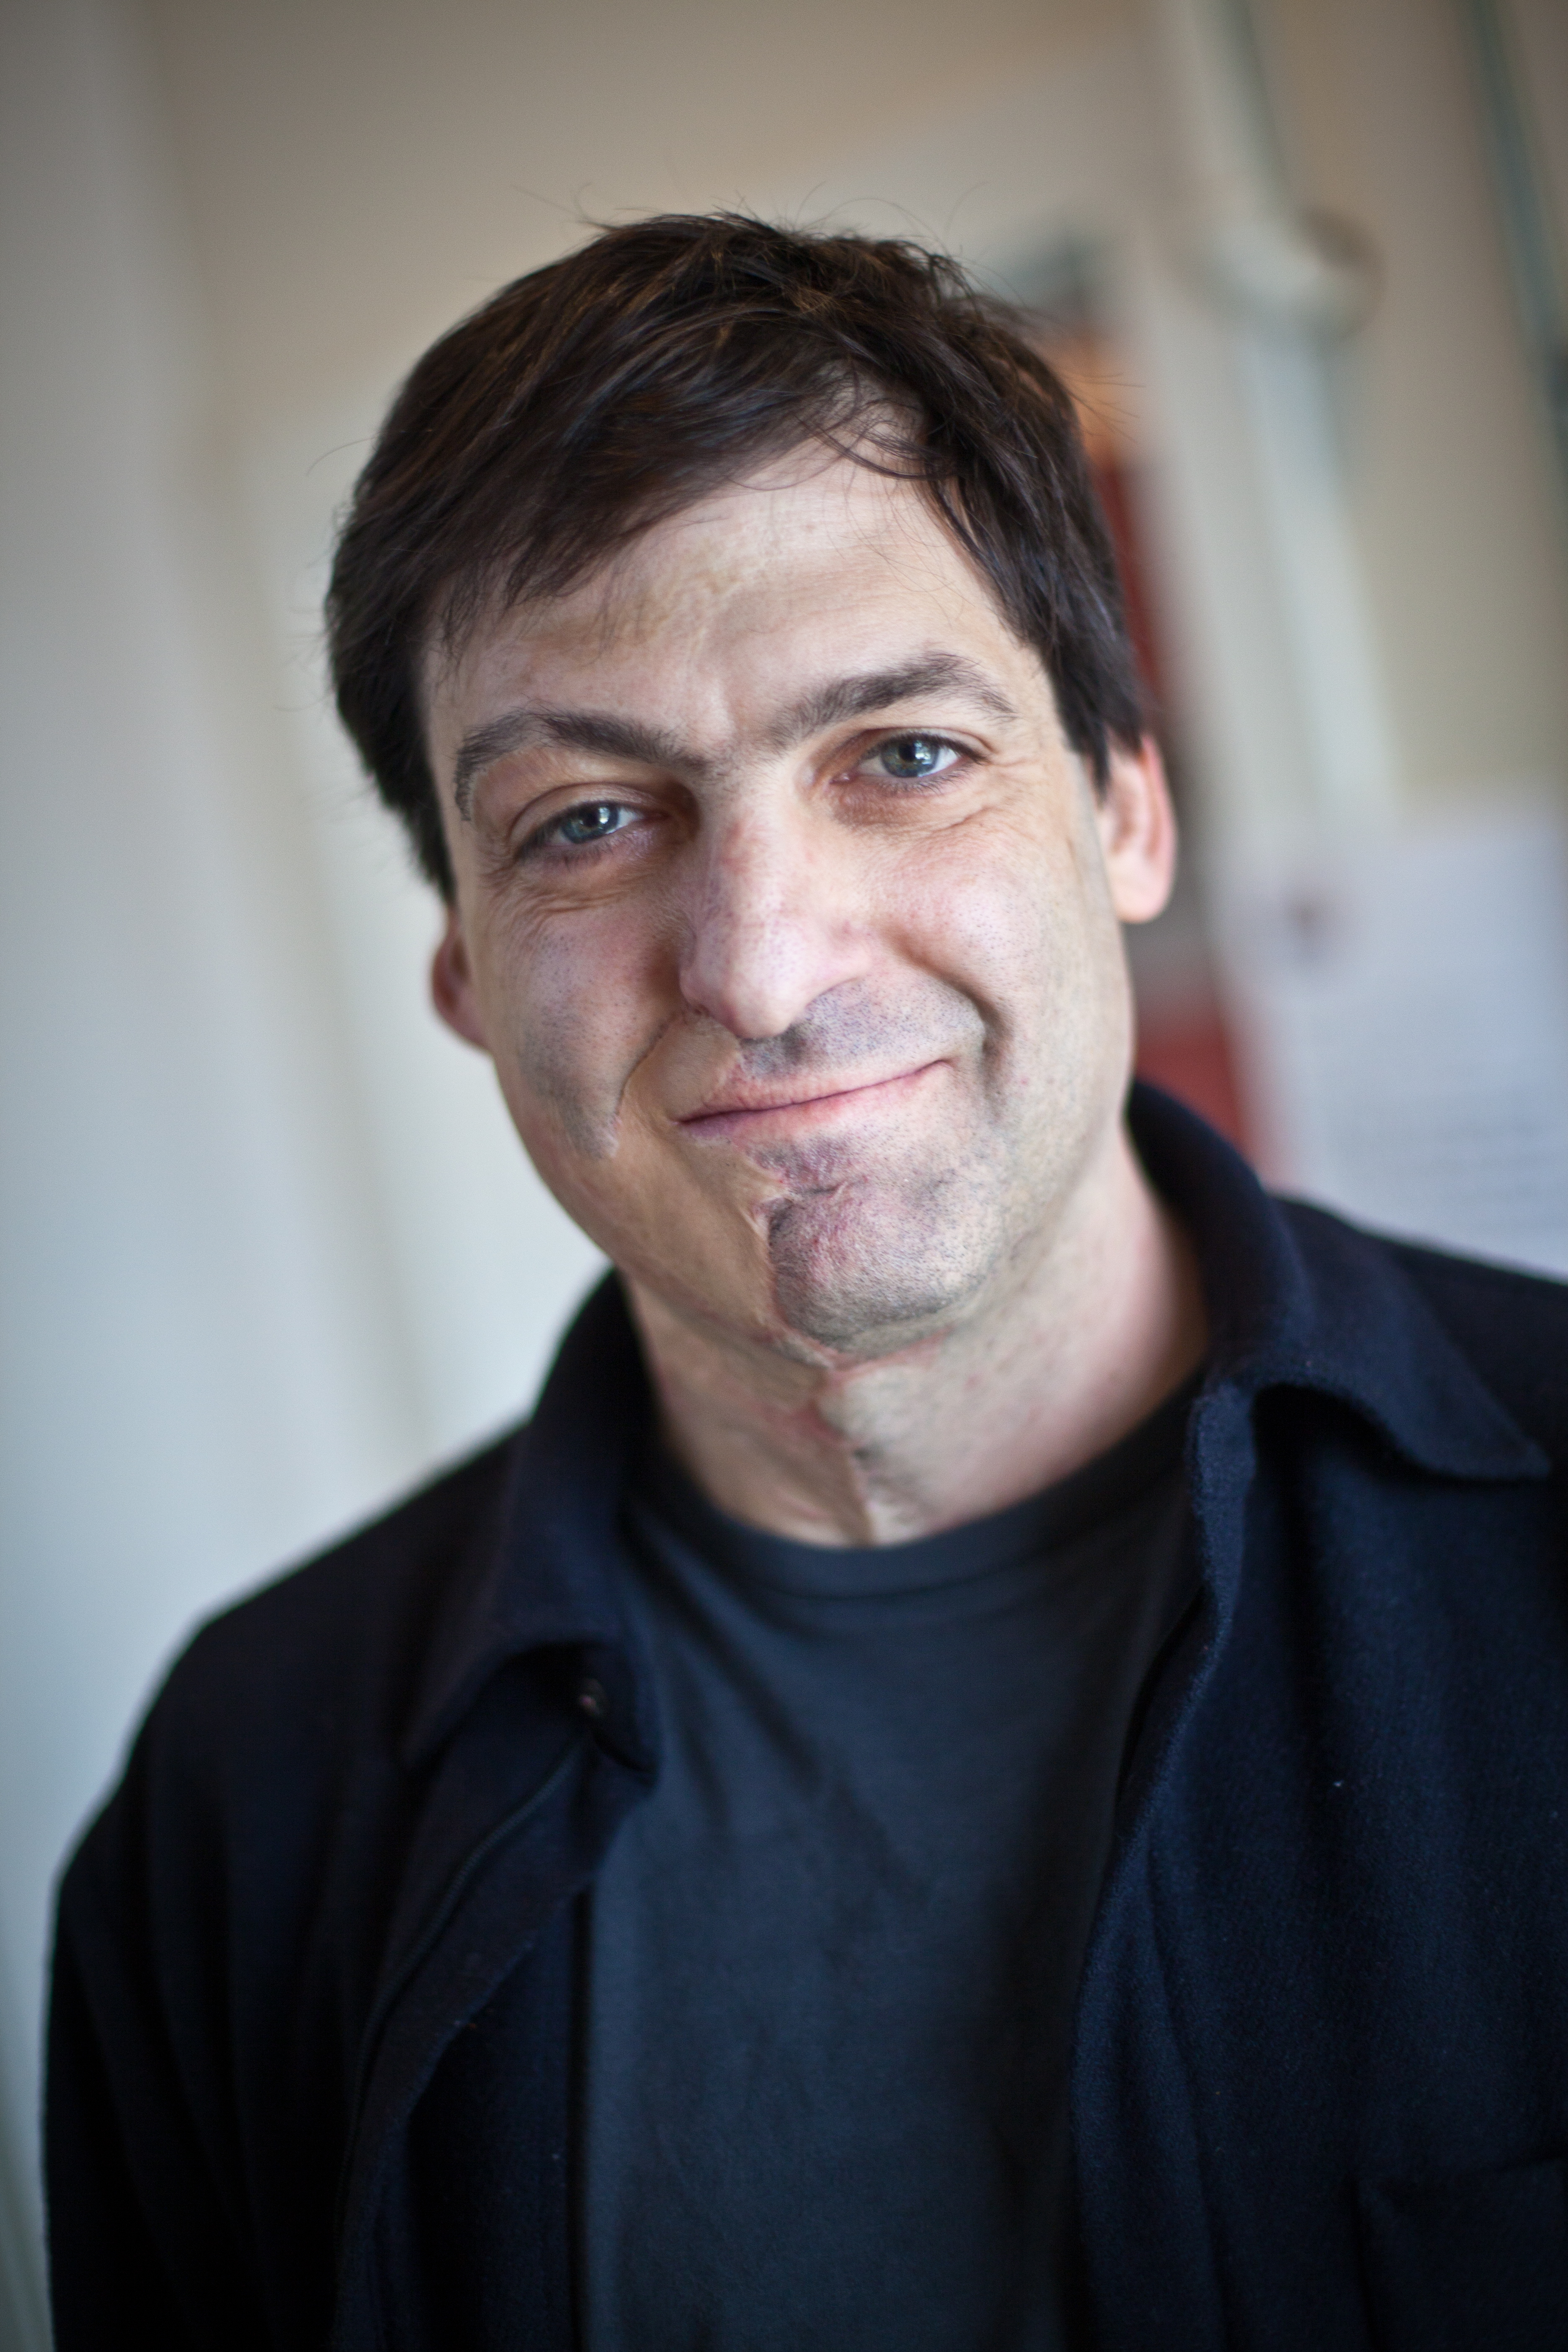 Dan ariely online dating in Sydney